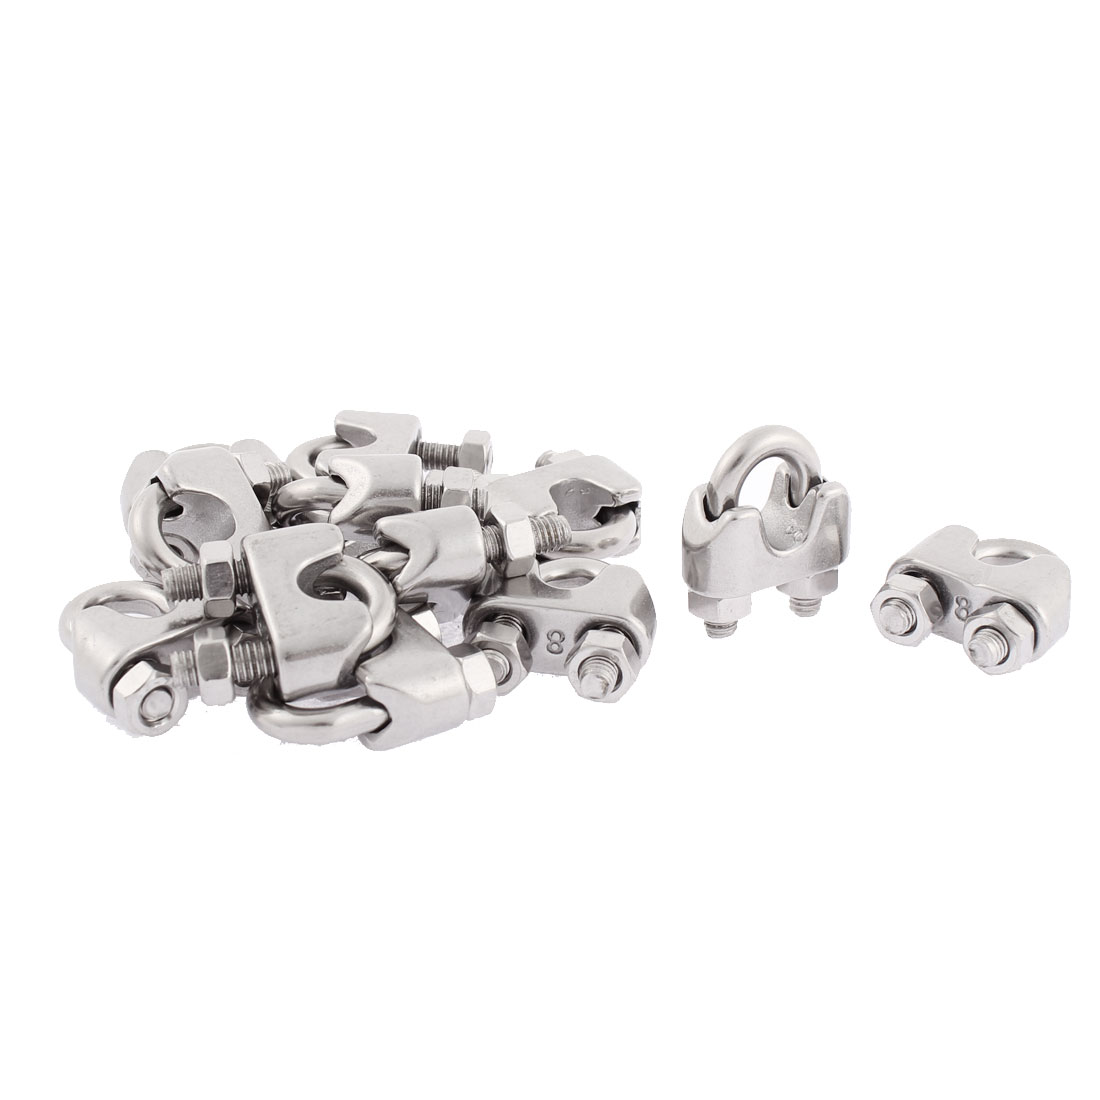 M8 Wire Rope Cable Clamp Clips Silver Tone 12pcs